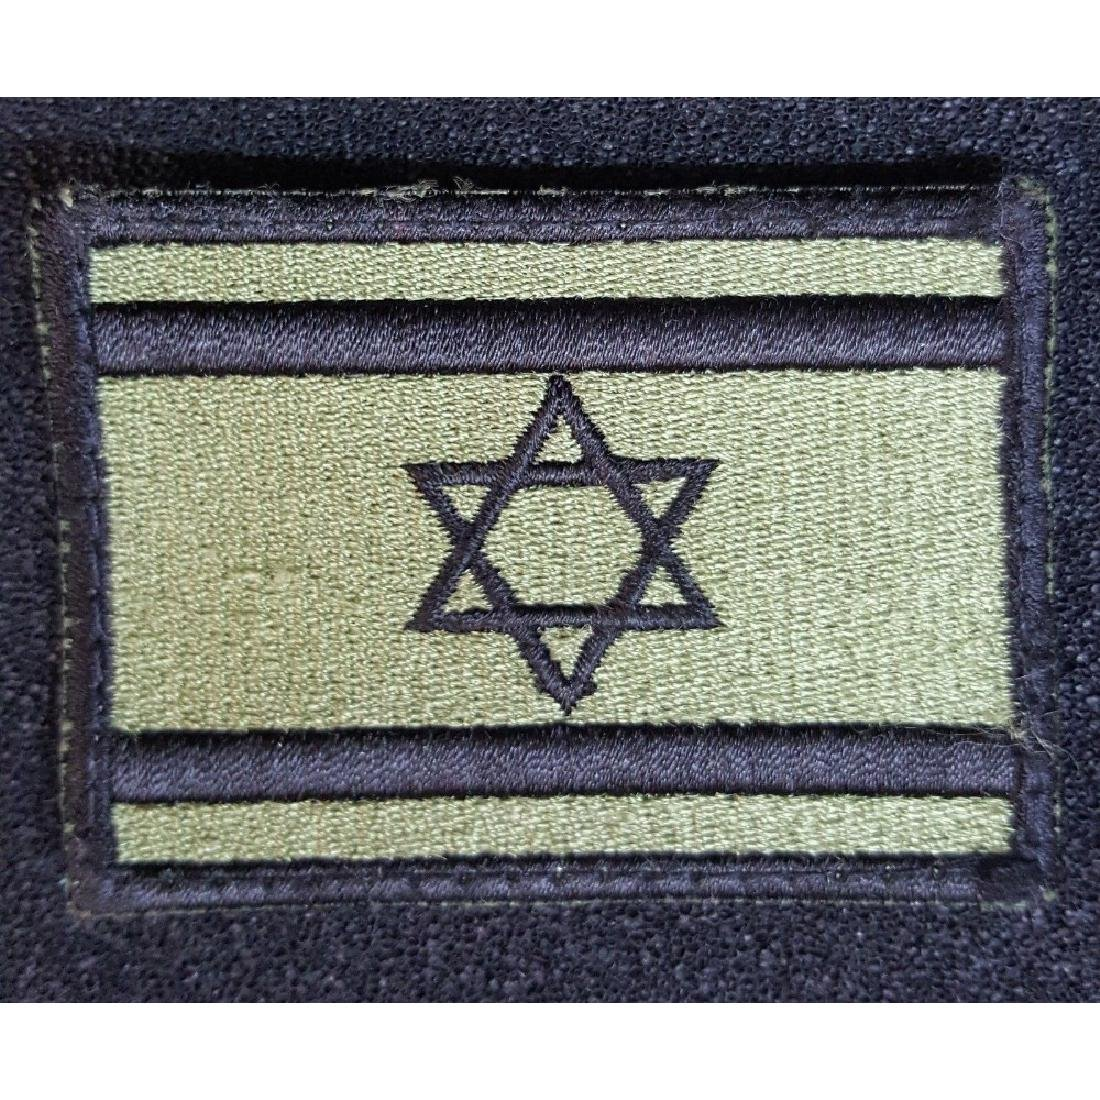 ISRAEL IDF MILITARY ZAHAL FLAG UNIT PATCH